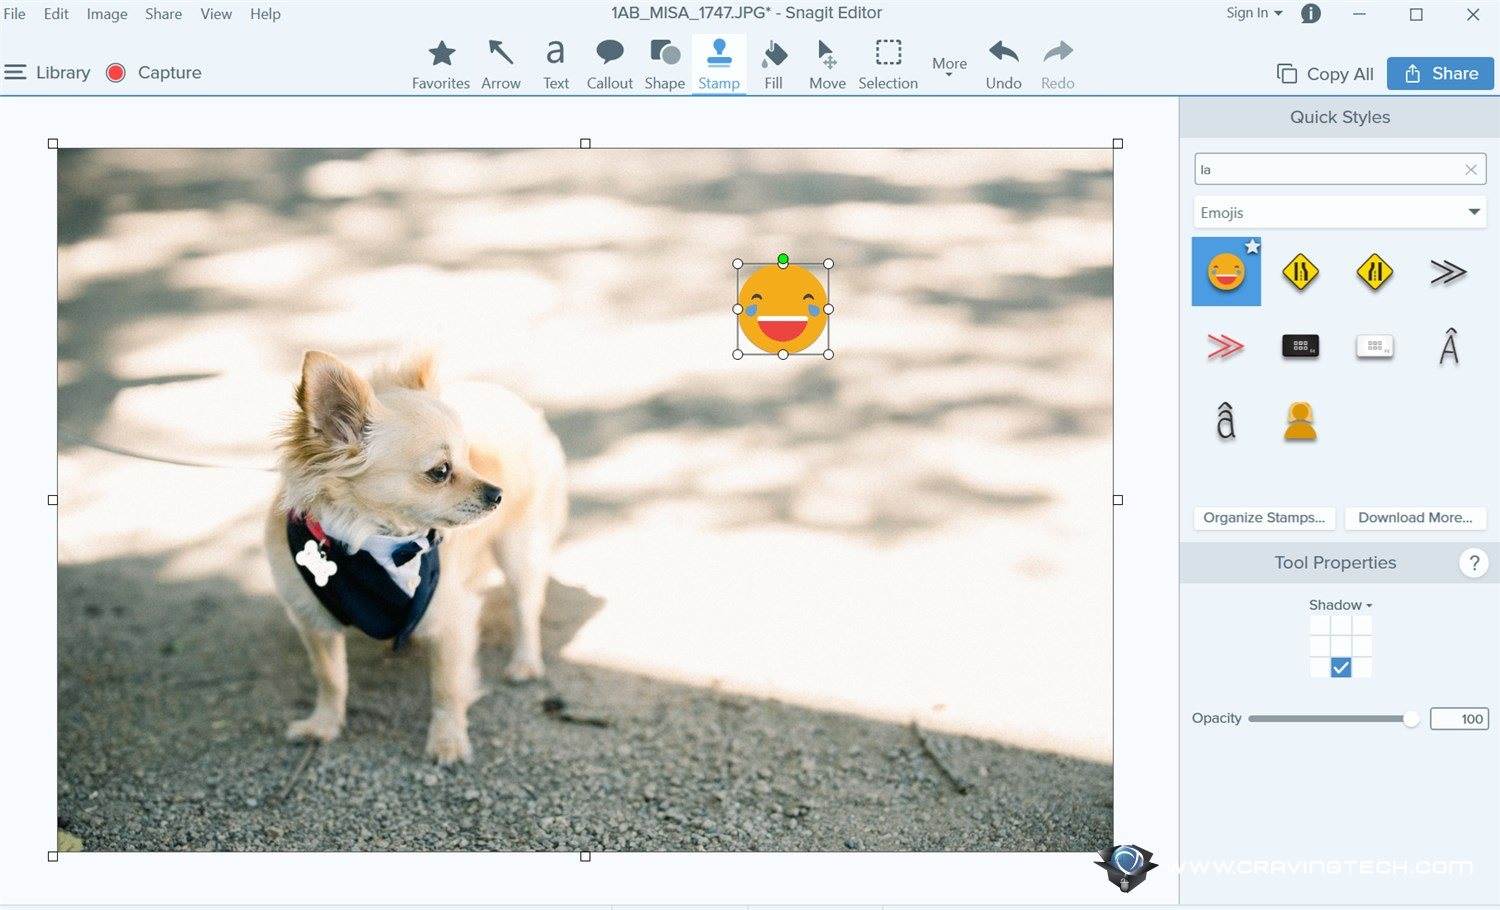 A step upgrade from Snagit 2018 – Snagit 2019 Review